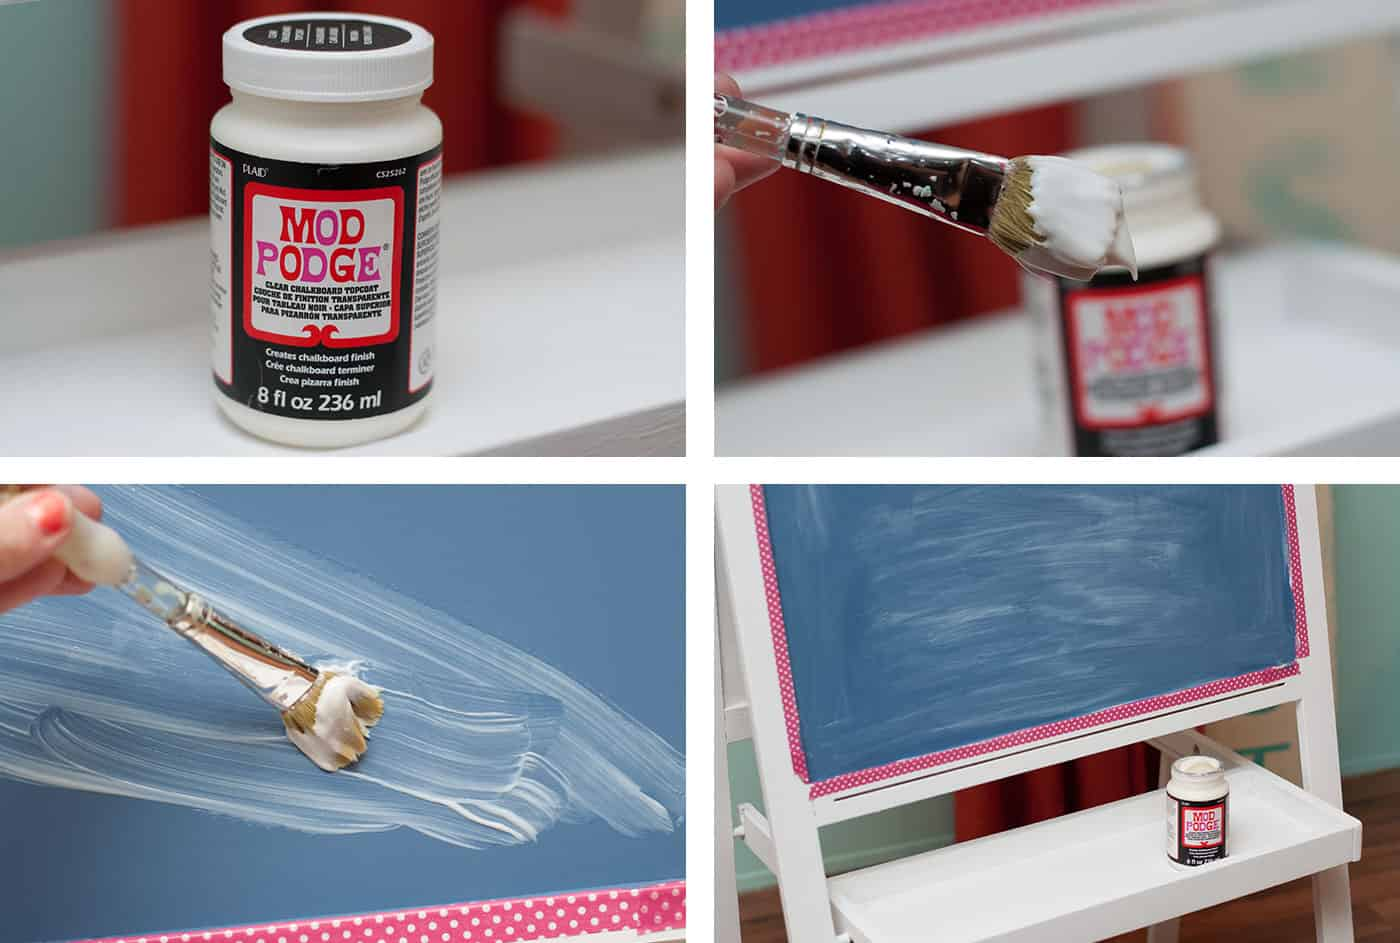 This IKEA easel was trashed by my 3-year-old, so I gave it a complete makeover with Mod Podge clear chalkboard topcoat. You'll love how easy this is!